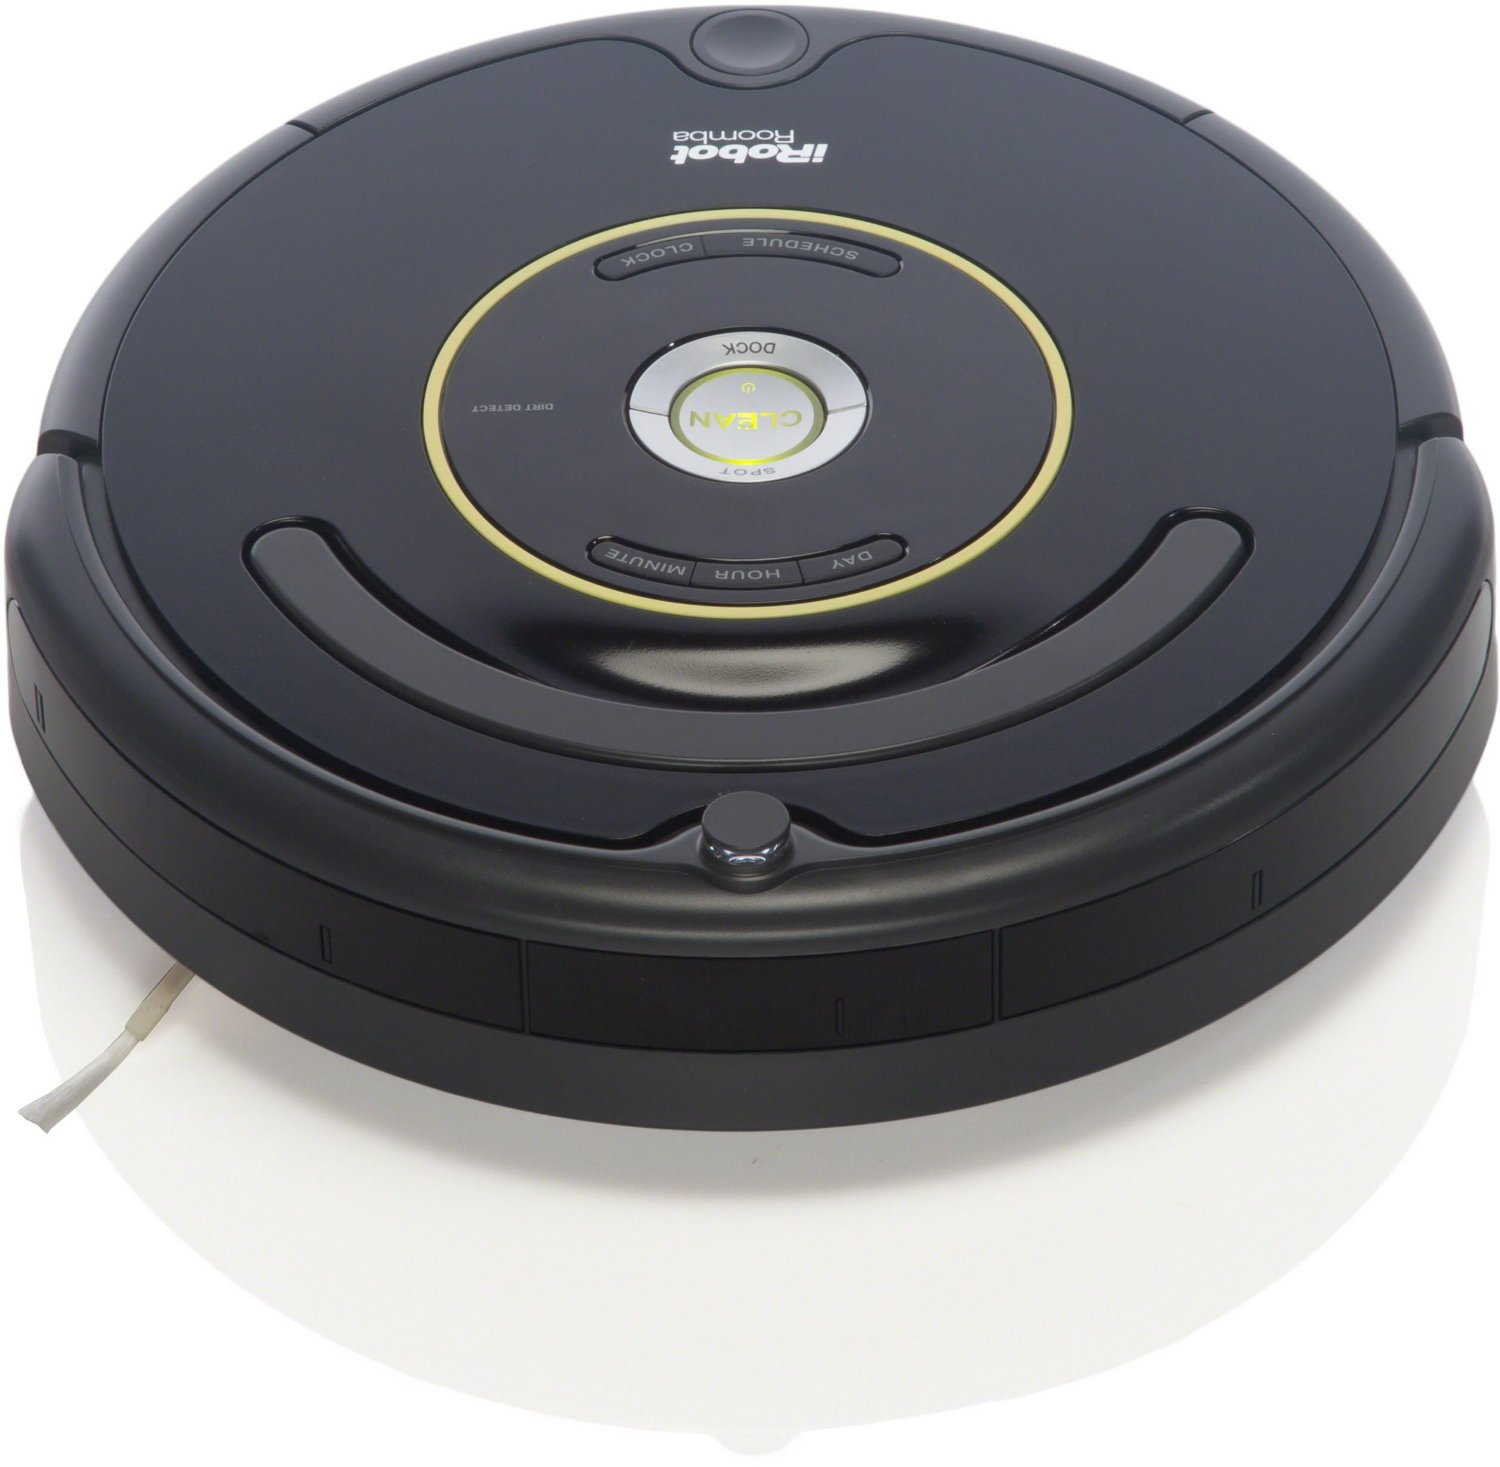 irobot roomba 650 notre avis d 39 expert sur cet aspirateur robot. Black Bedroom Furniture Sets. Home Design Ideas